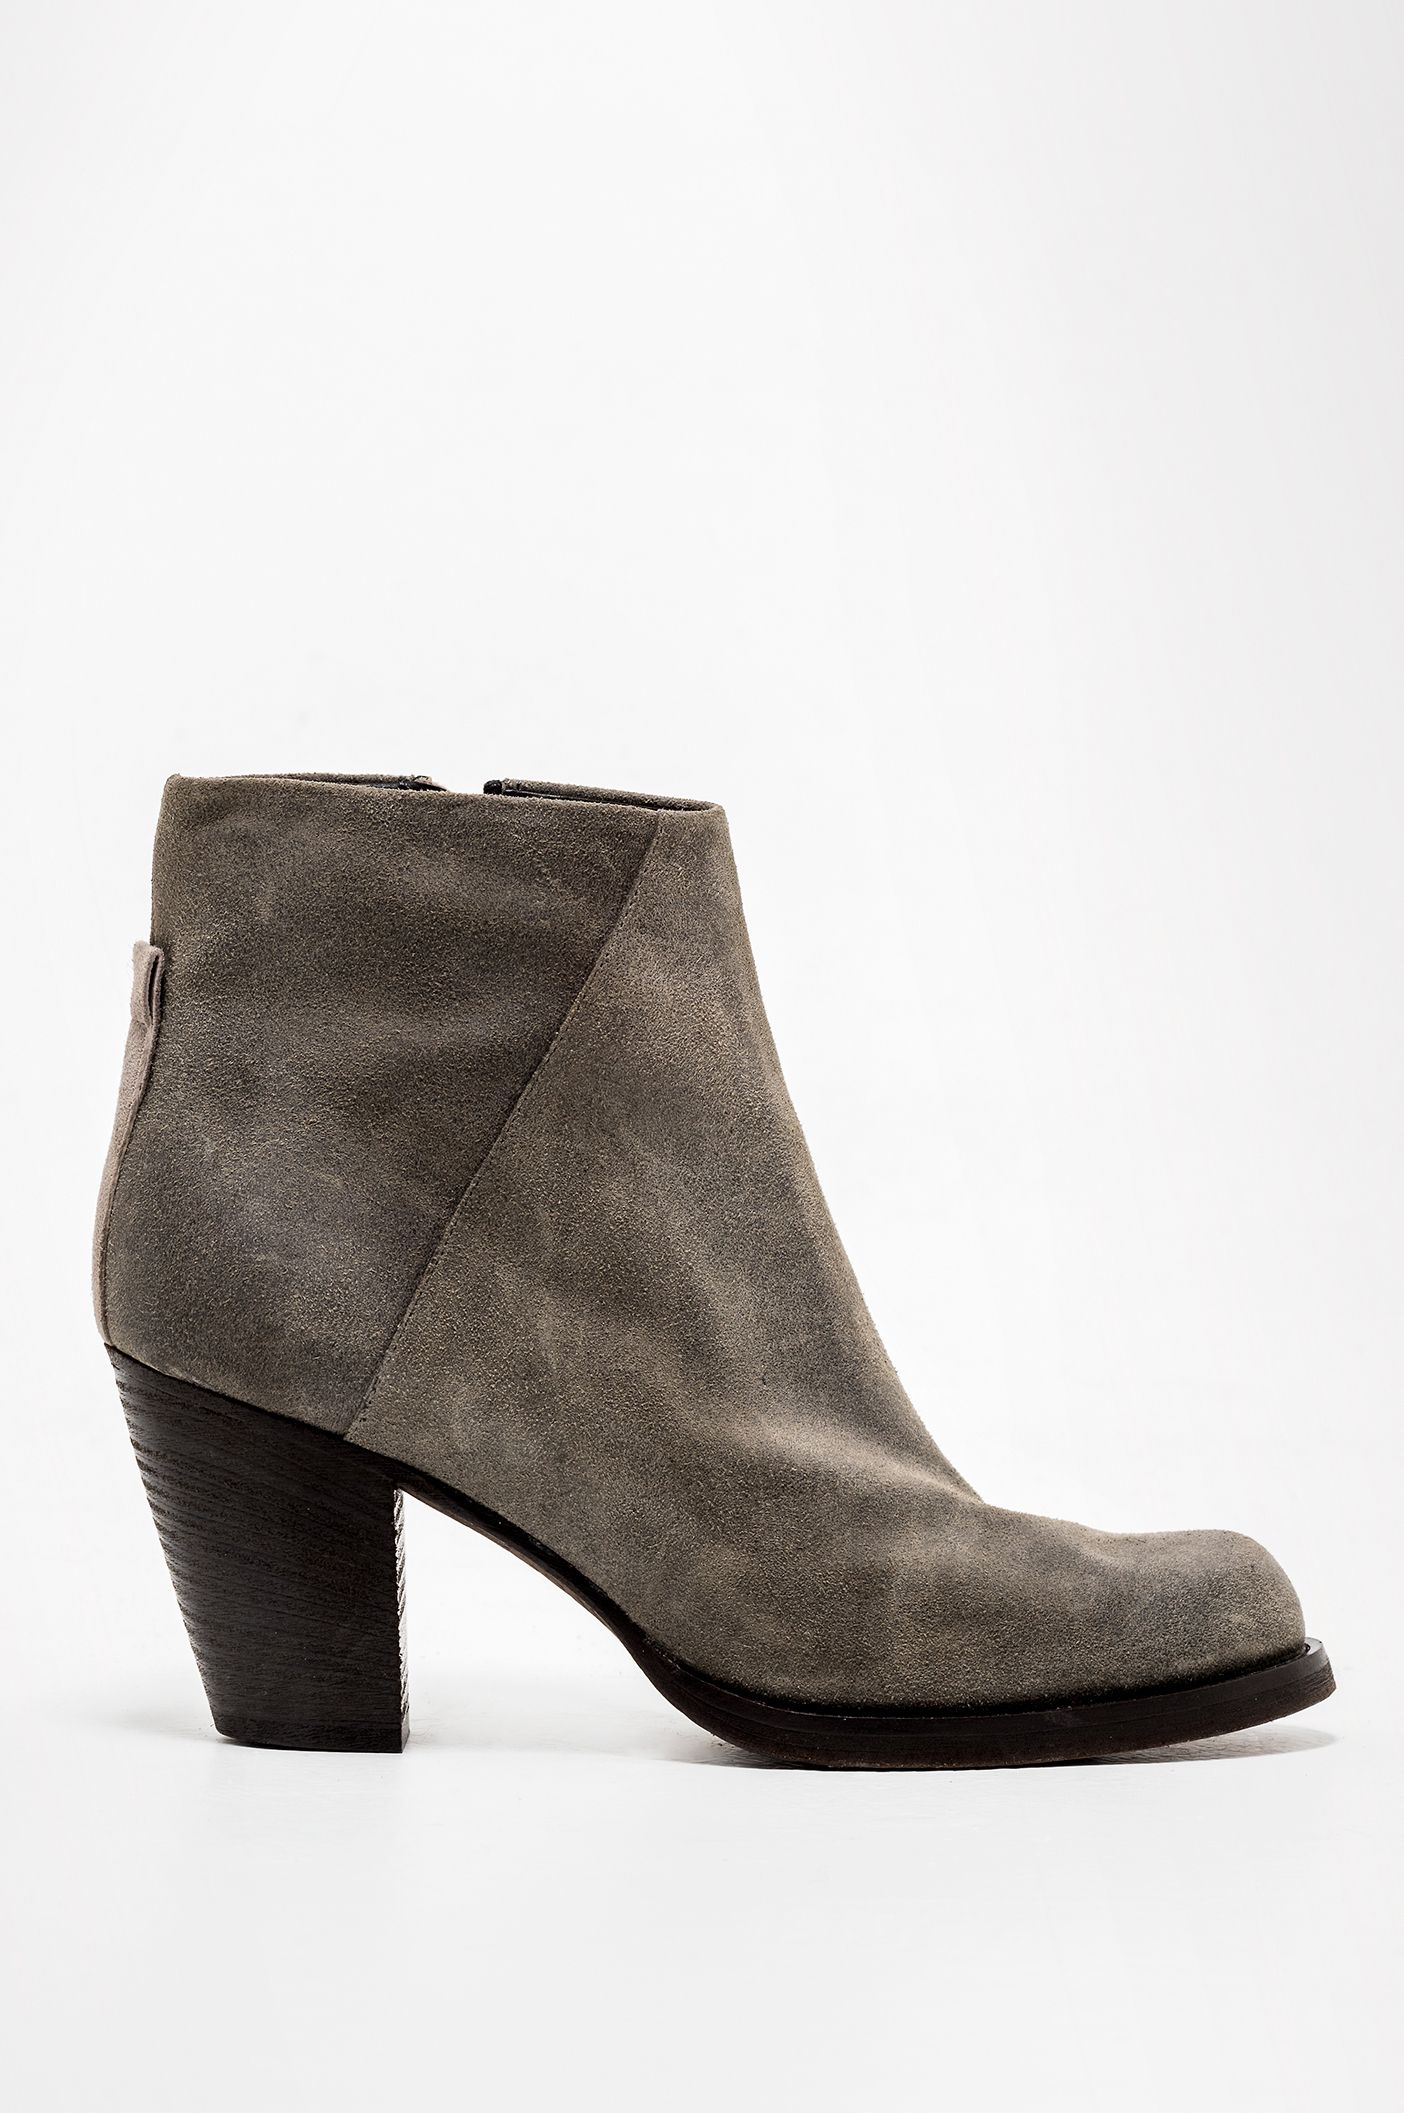 Zapatos negros formales Howsty para mujer 0s0fEkU